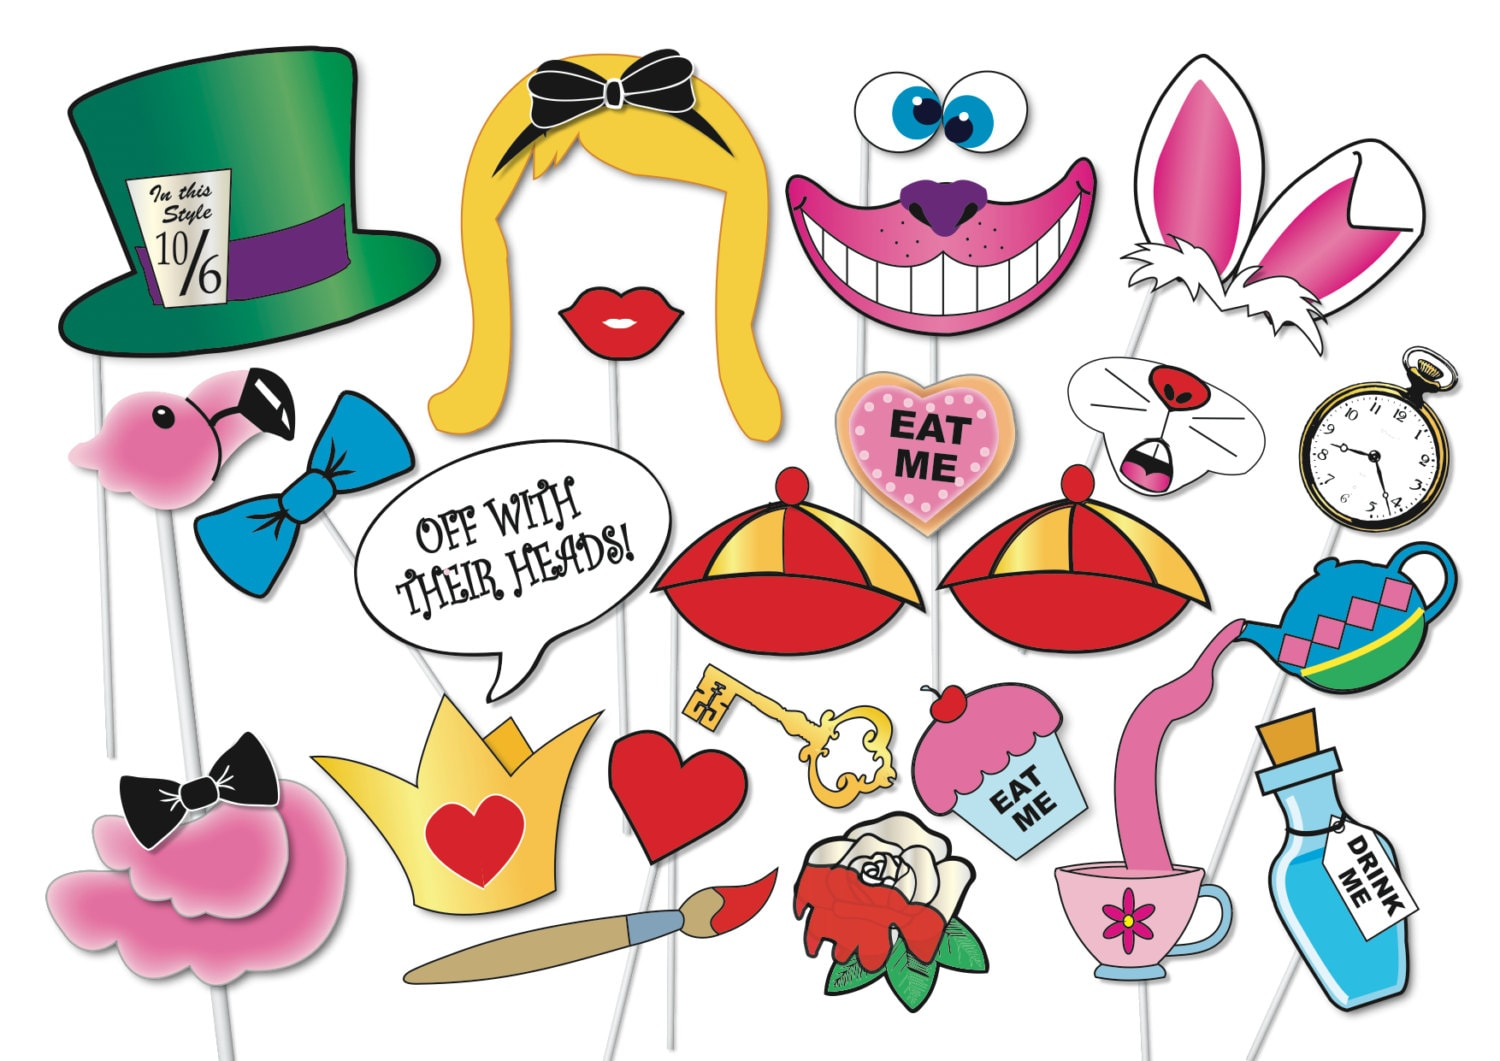 Amato Alice in wonderland Party Photo booth Props Set 33 Piece QY12